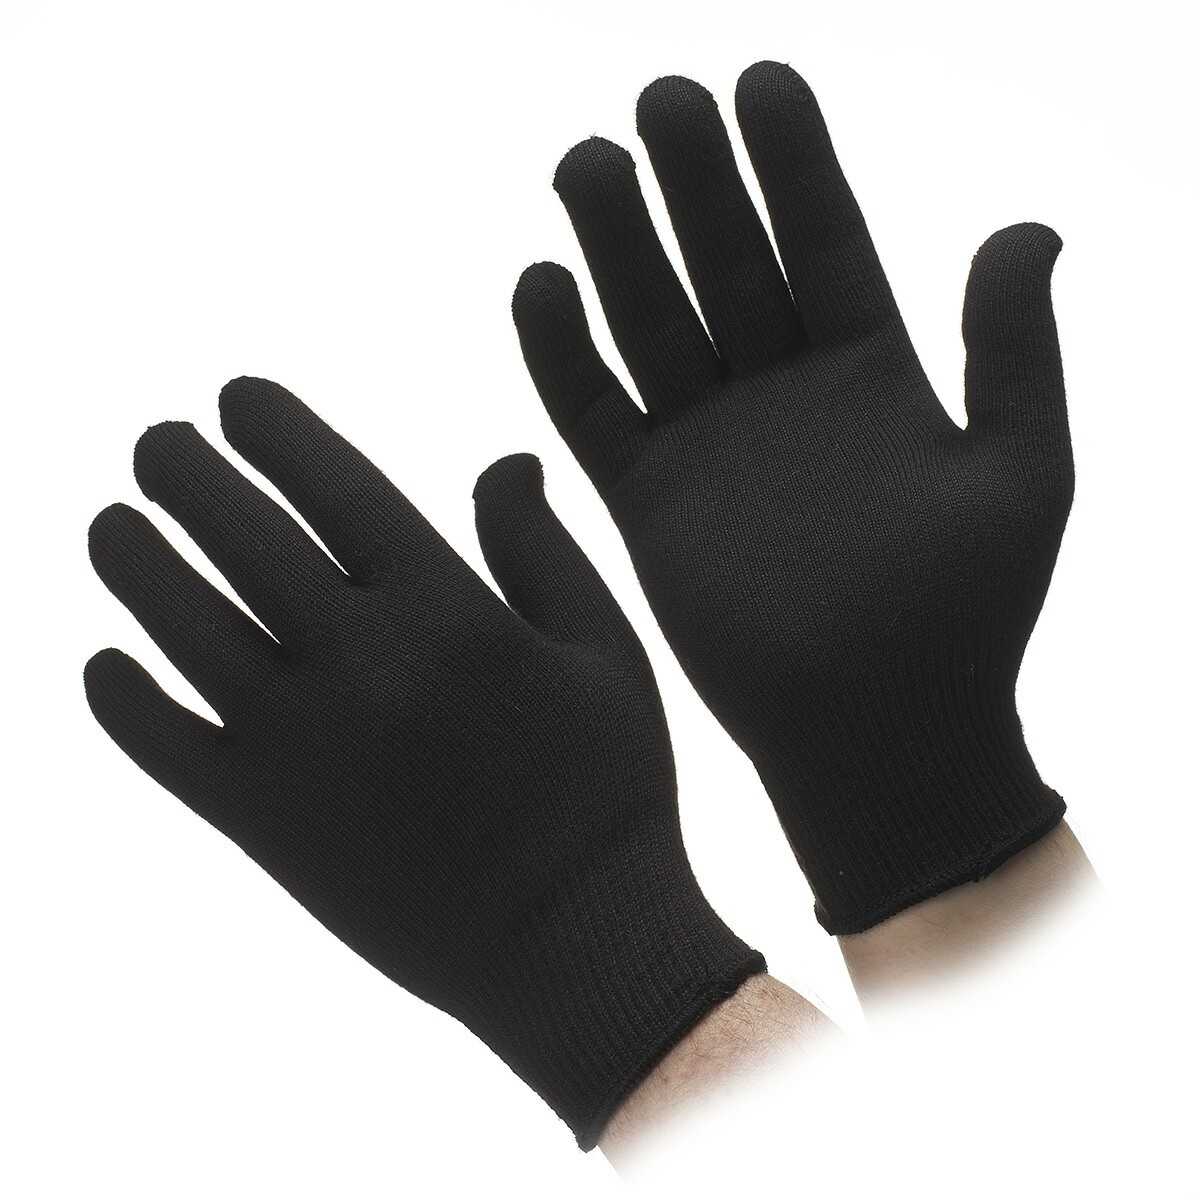 Black gloves online - Go Thermax Black Glove Liners